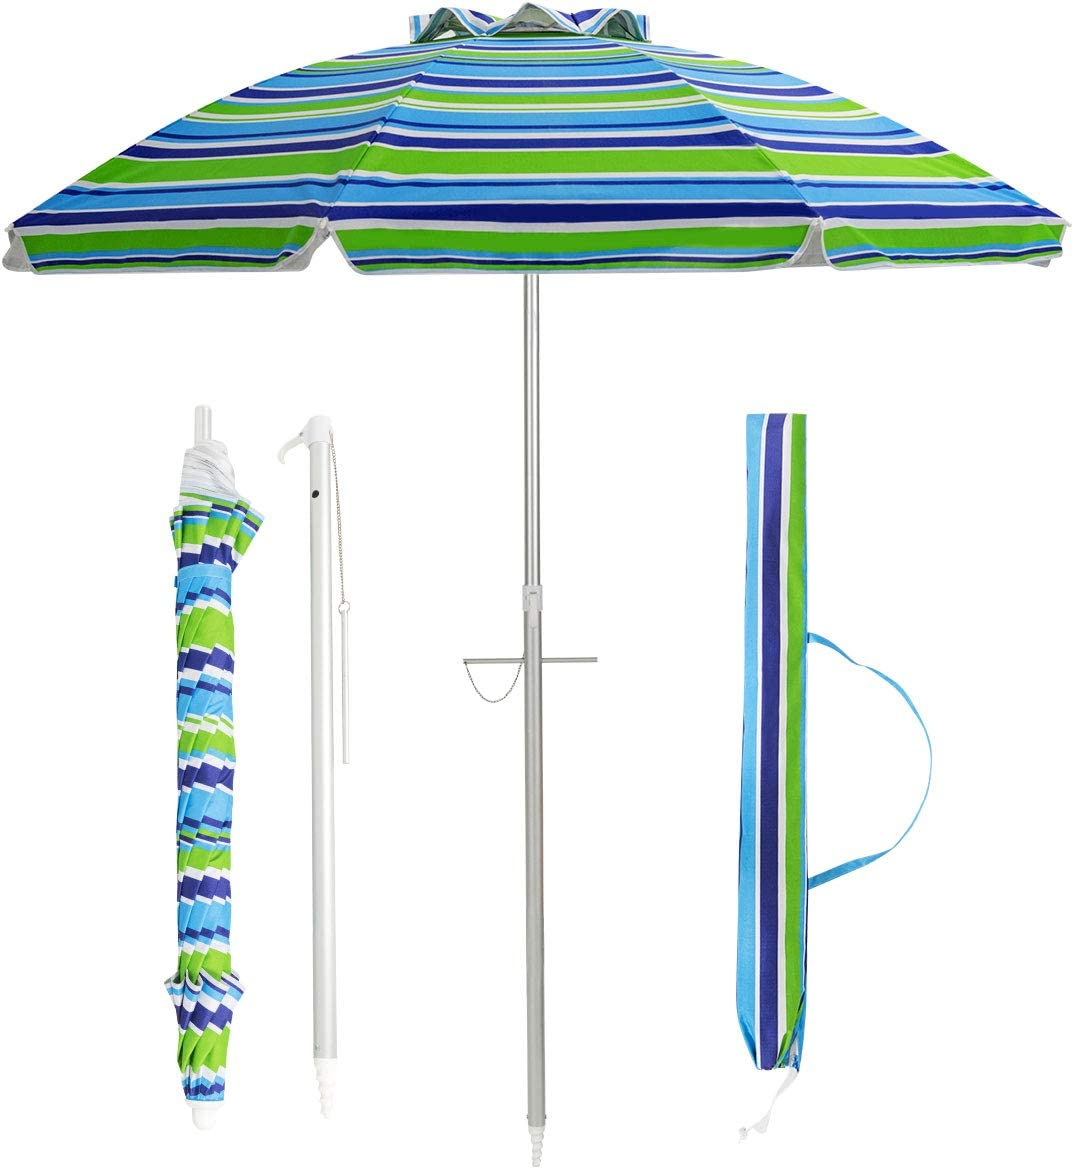 Tangkula 6.5ft Outdoor Beach Umbrella with Sand Anchor, Patio Umbrella with Push Button Tilt UPF 50 Protection, Portable Sunshade Umbrella with Carry Bag for Garden Beach Outdoor